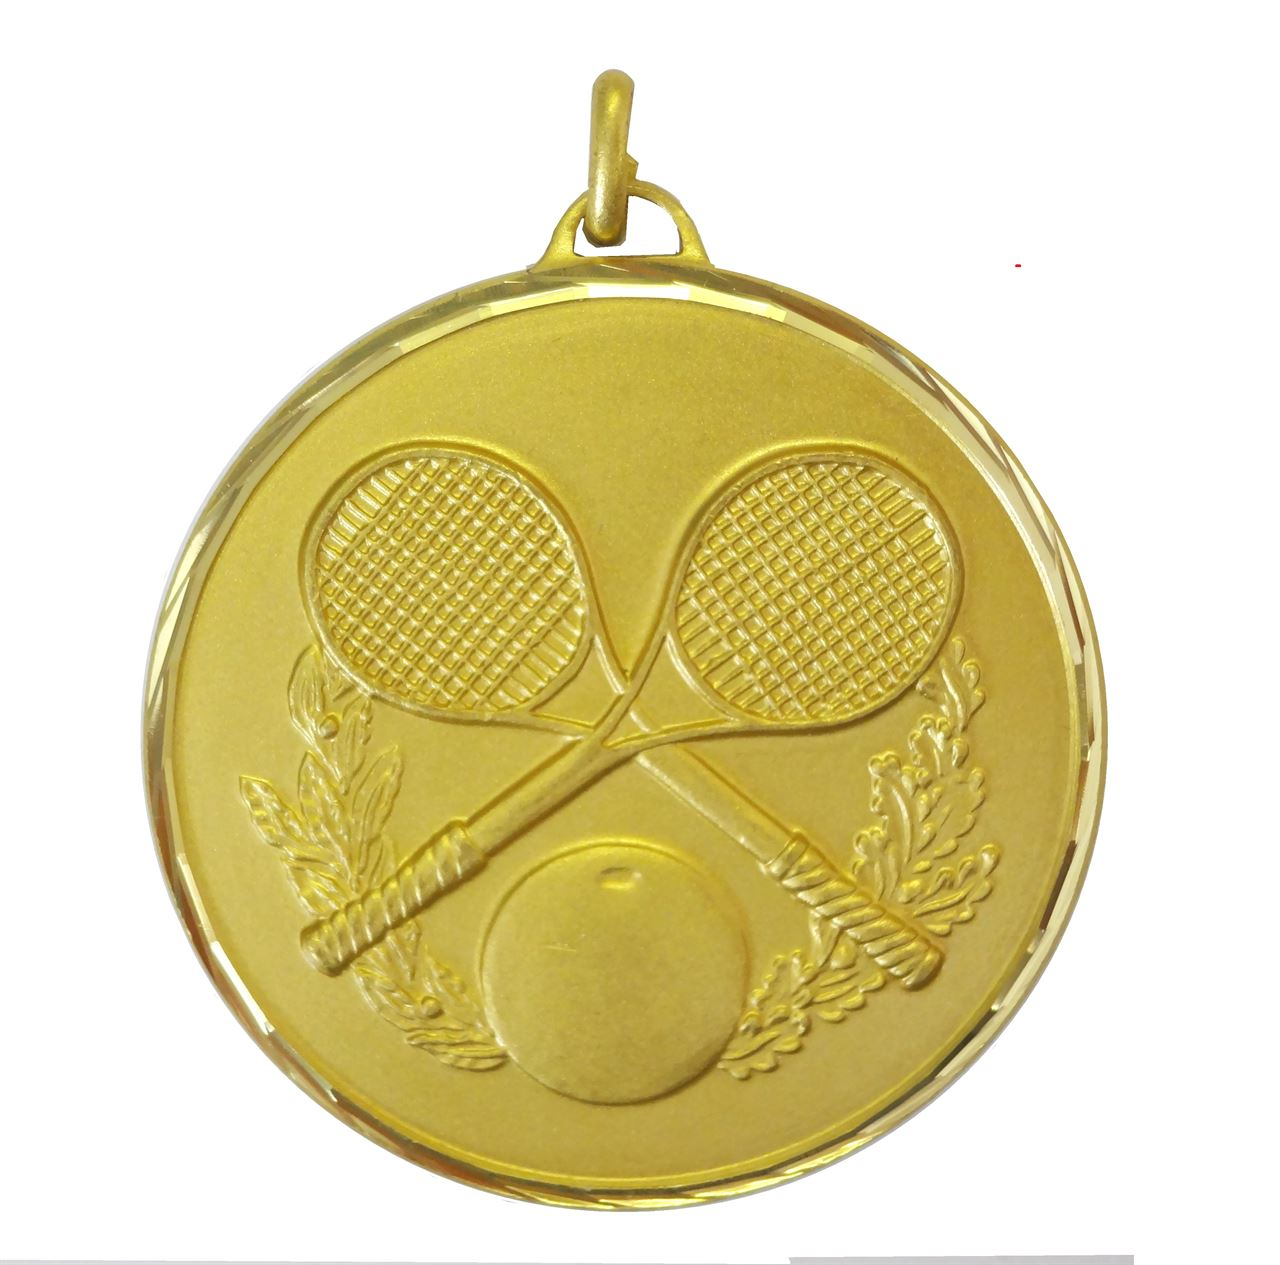 Gold Faceted Squash Medal (size: 50mm) - 368/50G